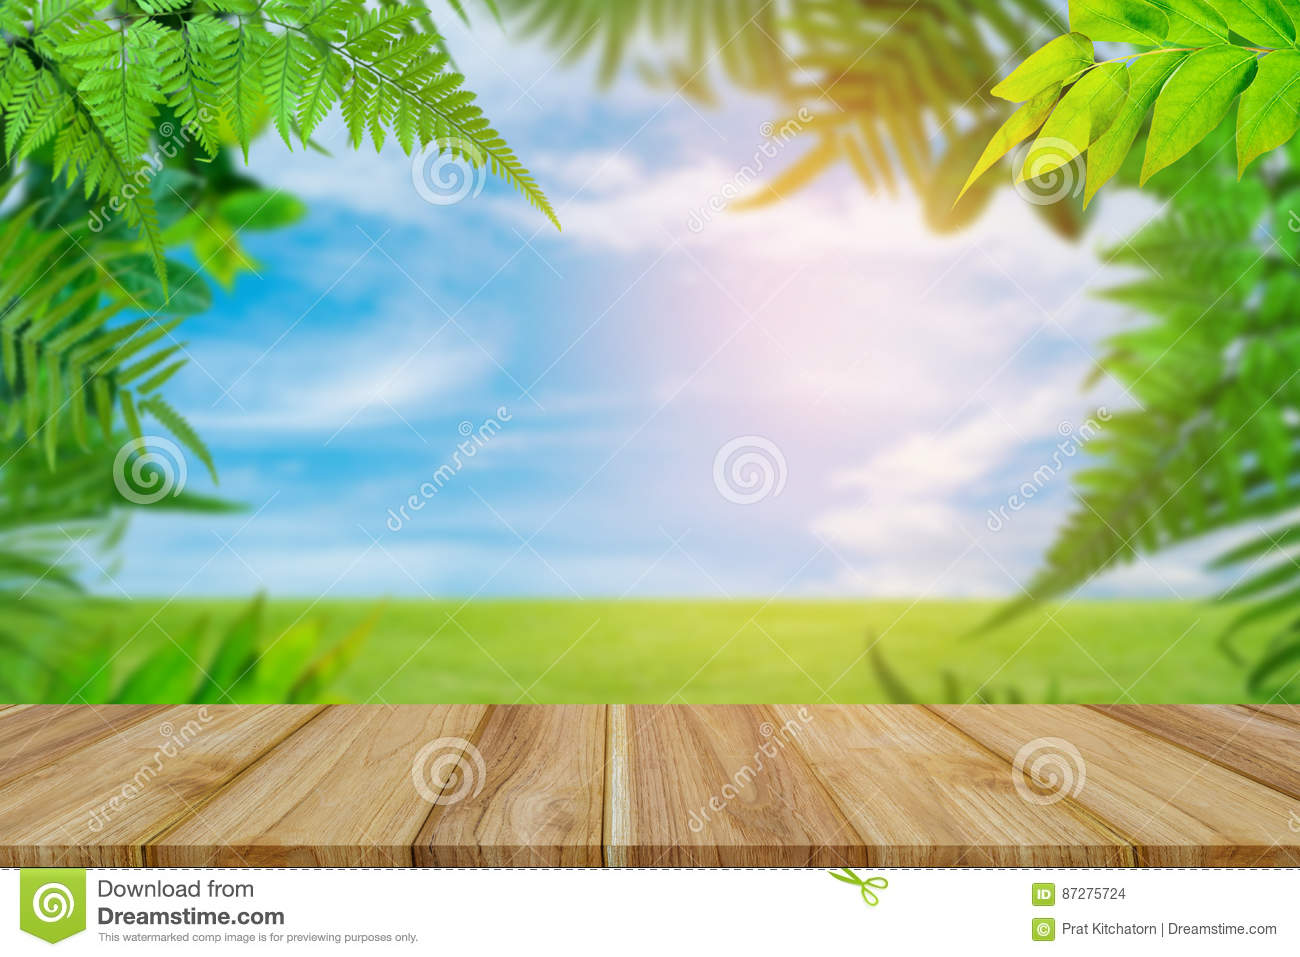 Green Trees And Leaf Greenery Sky Cloud Background Stock